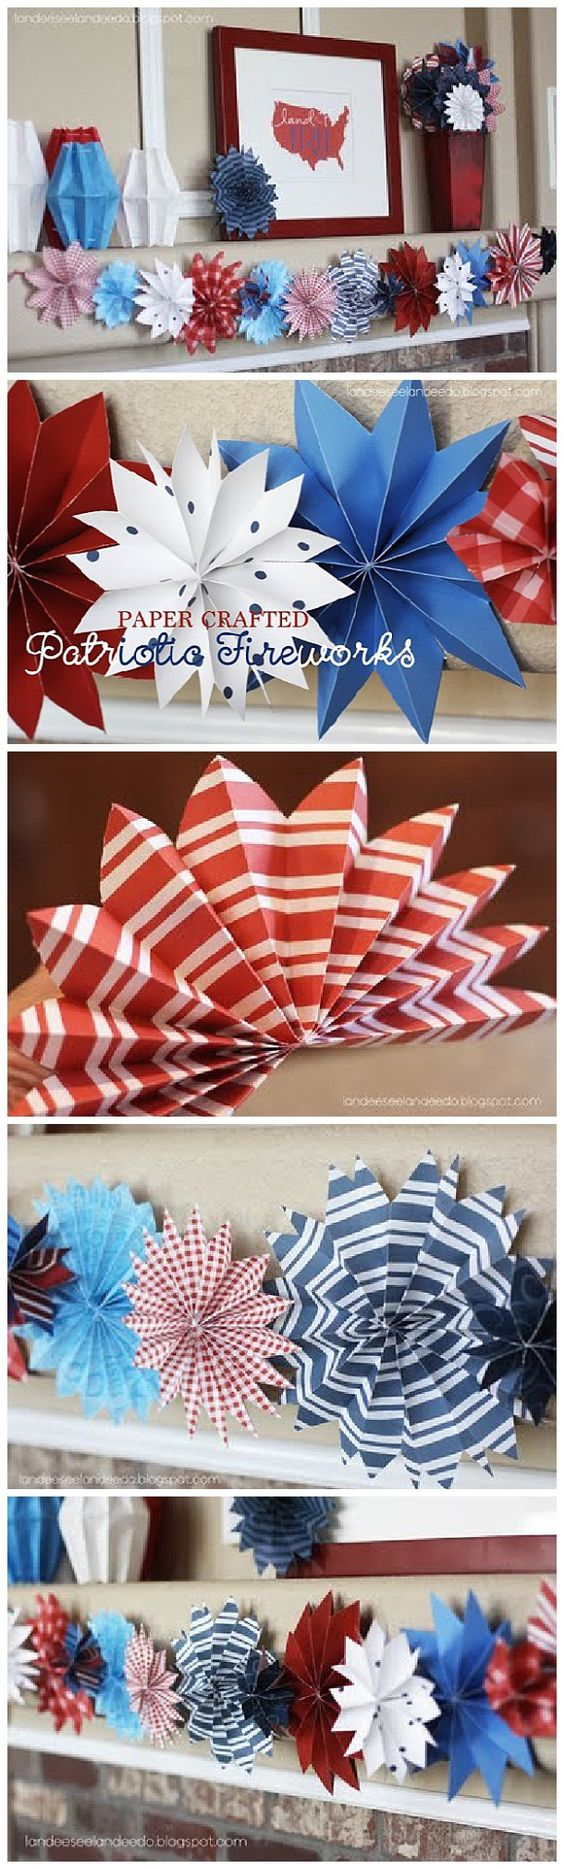 DIY Easy Paper Crafted 4th of July Fireworks Decorations using scrapbook paper or card stock. Perfect patriotic decorations for your party.